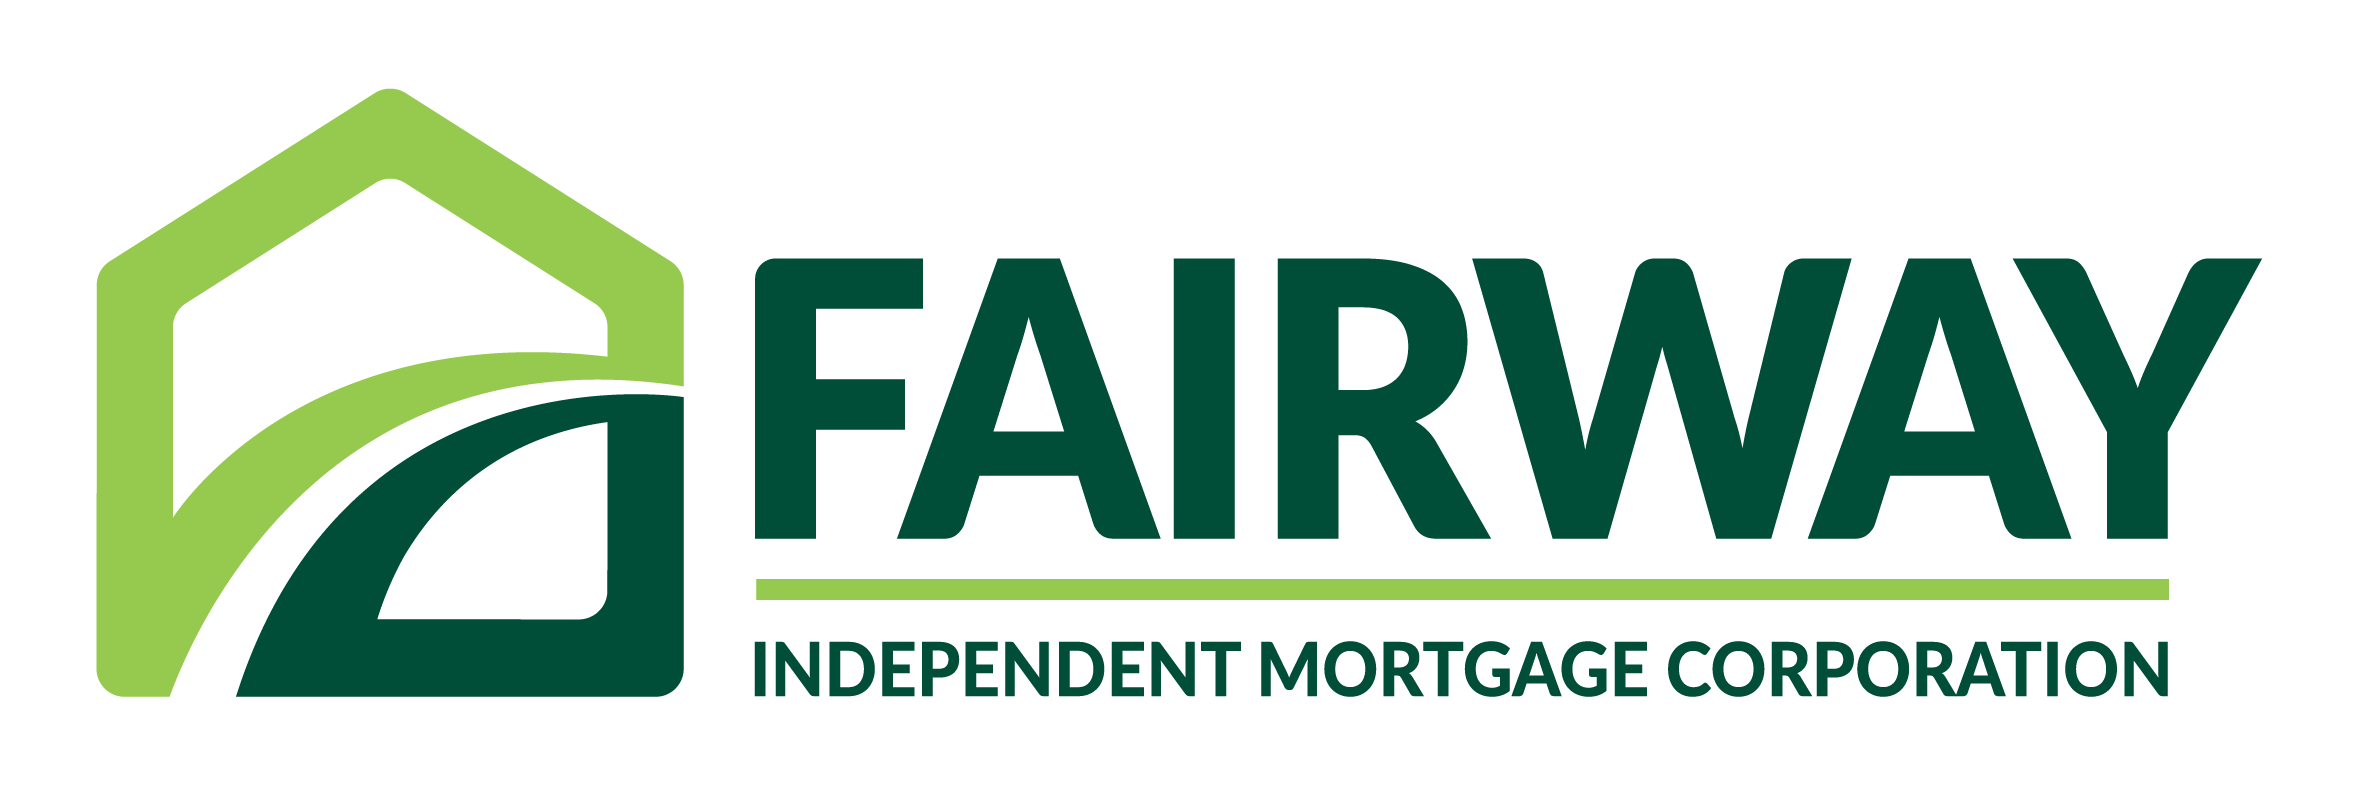 Fairway Independent Mortgage Corporation Sponsor